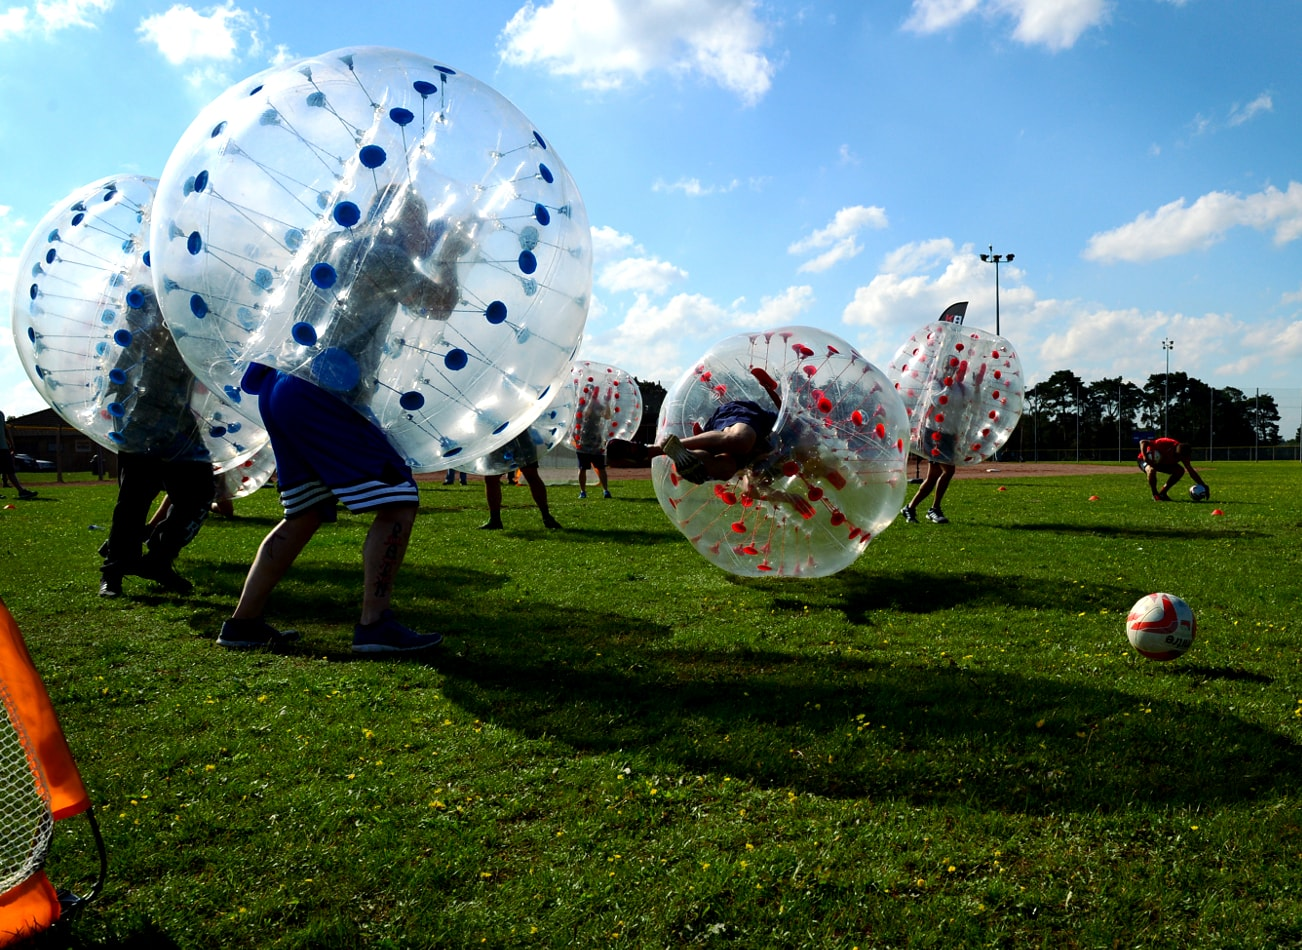 foot bulle à Amsterdam bubble foot bulle bubble bump football zorb amsterdam activites vimigo